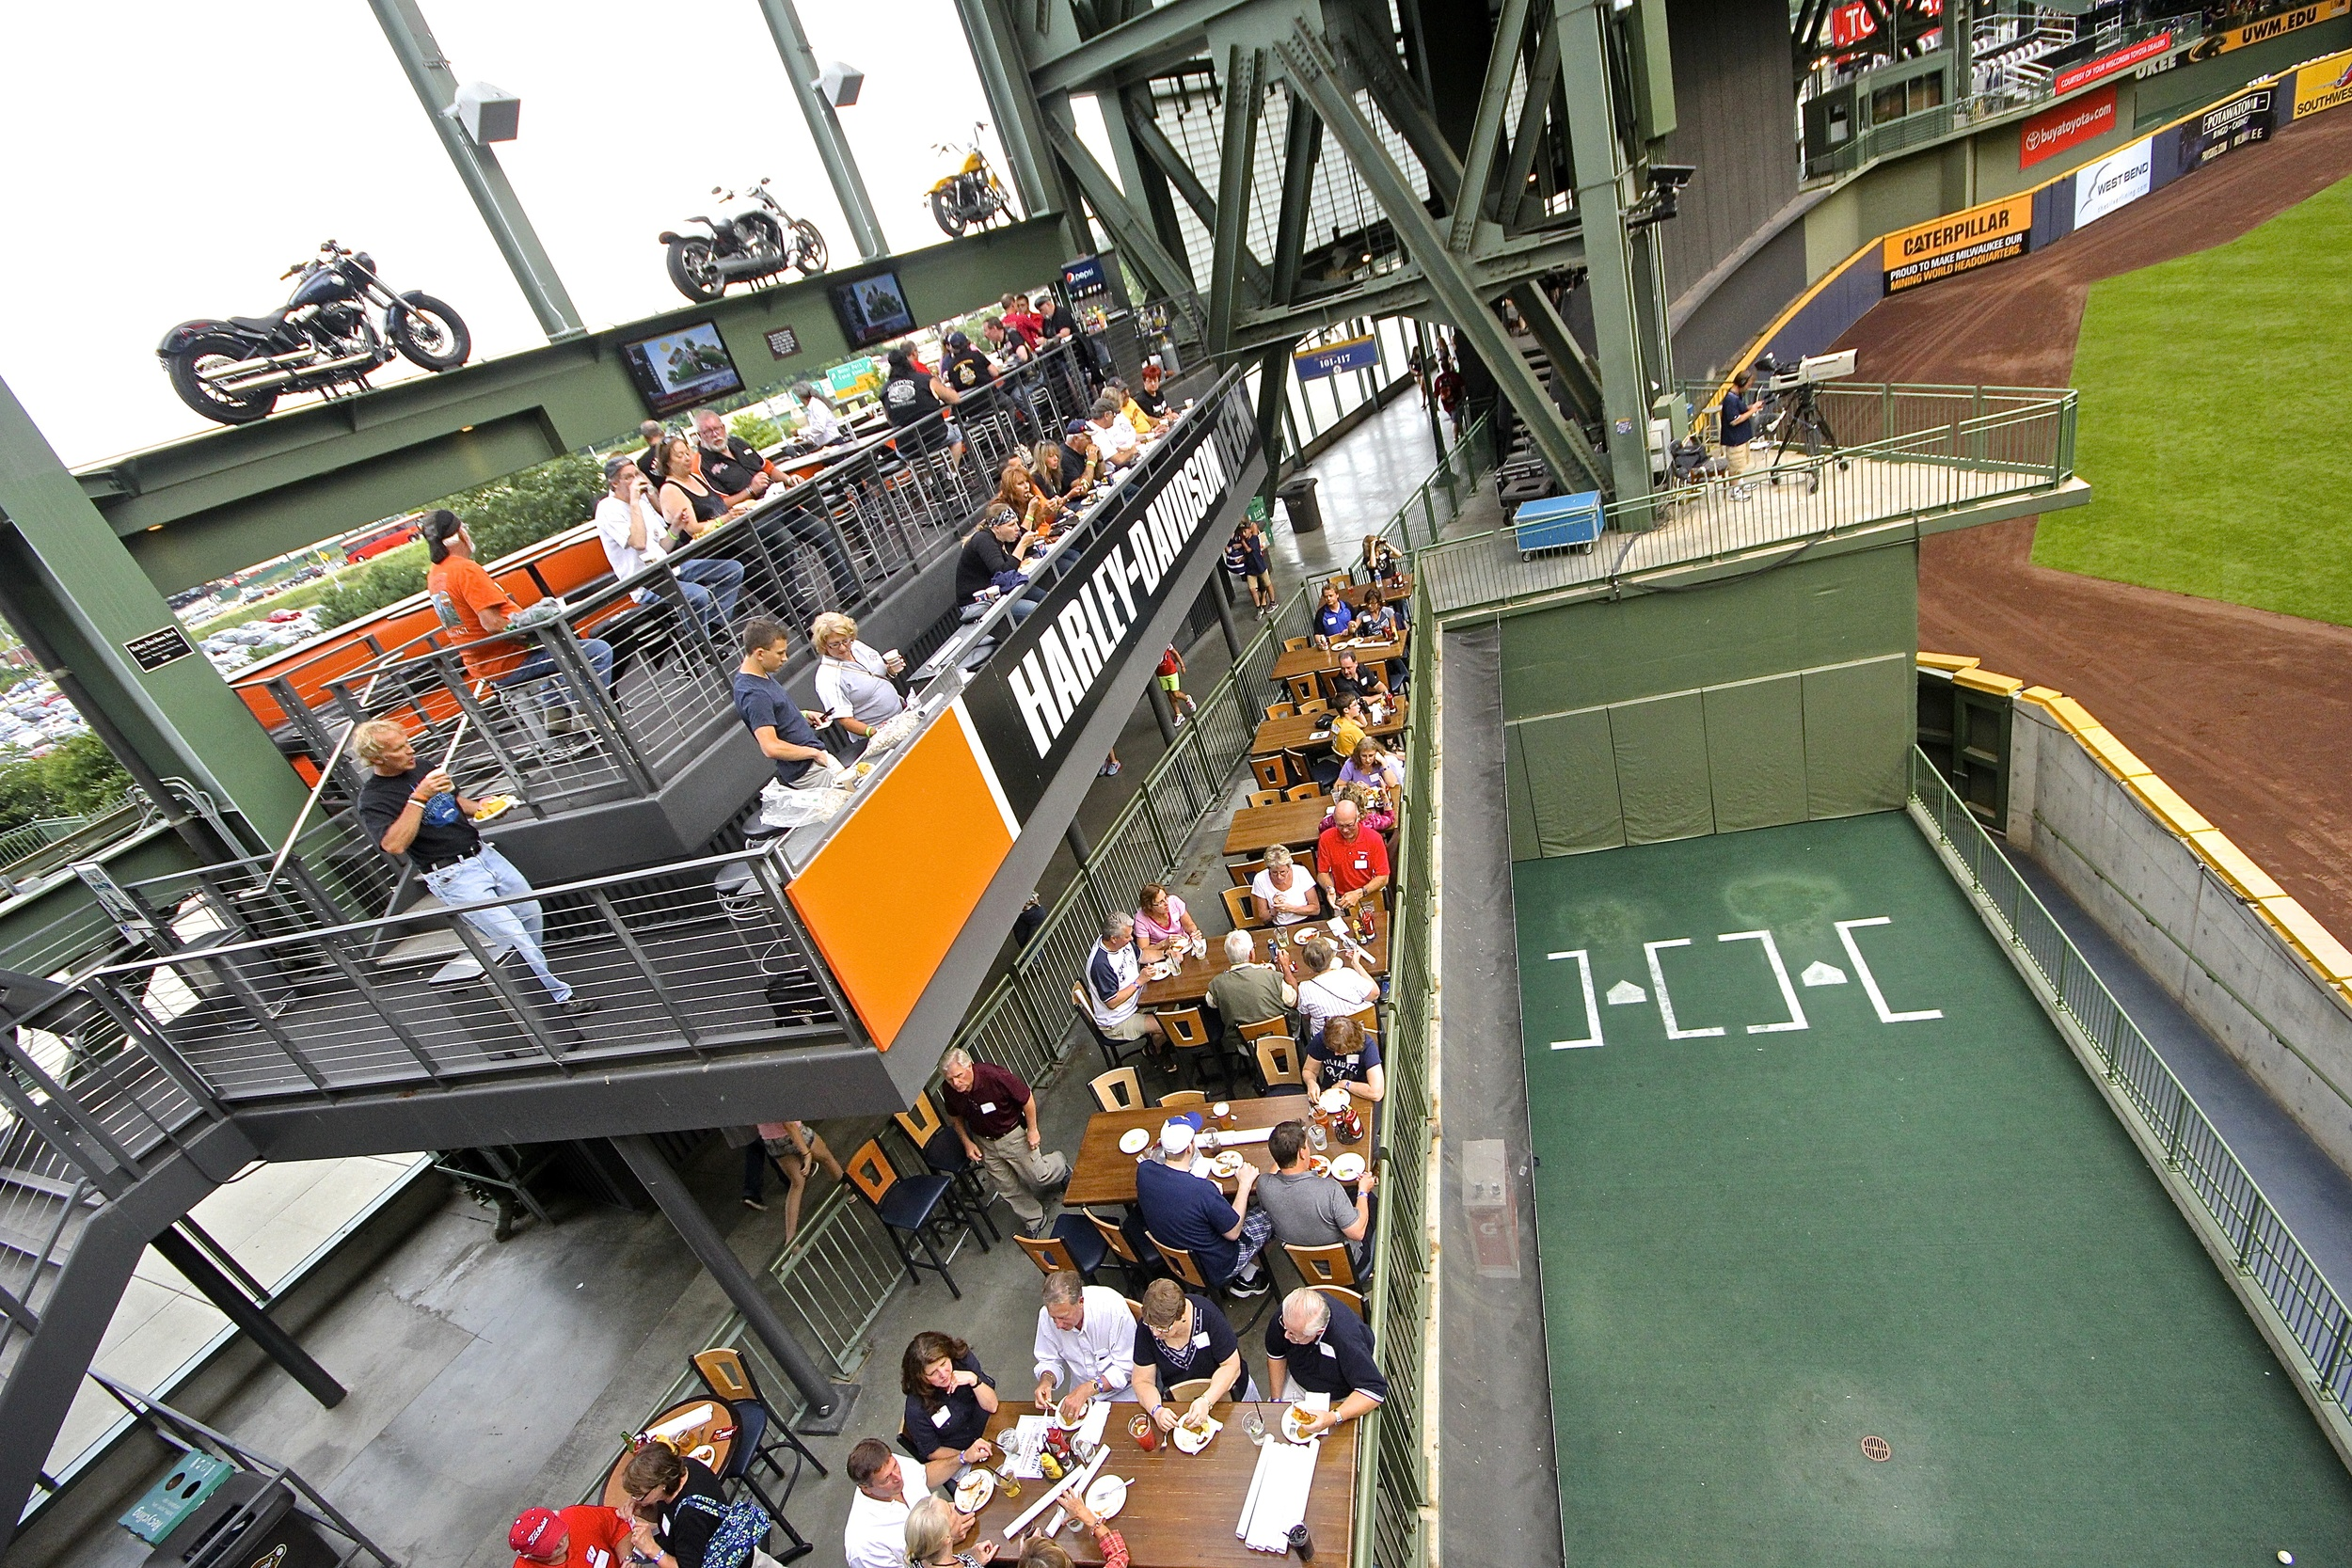 View of the bullpen from Harley Davidson porch